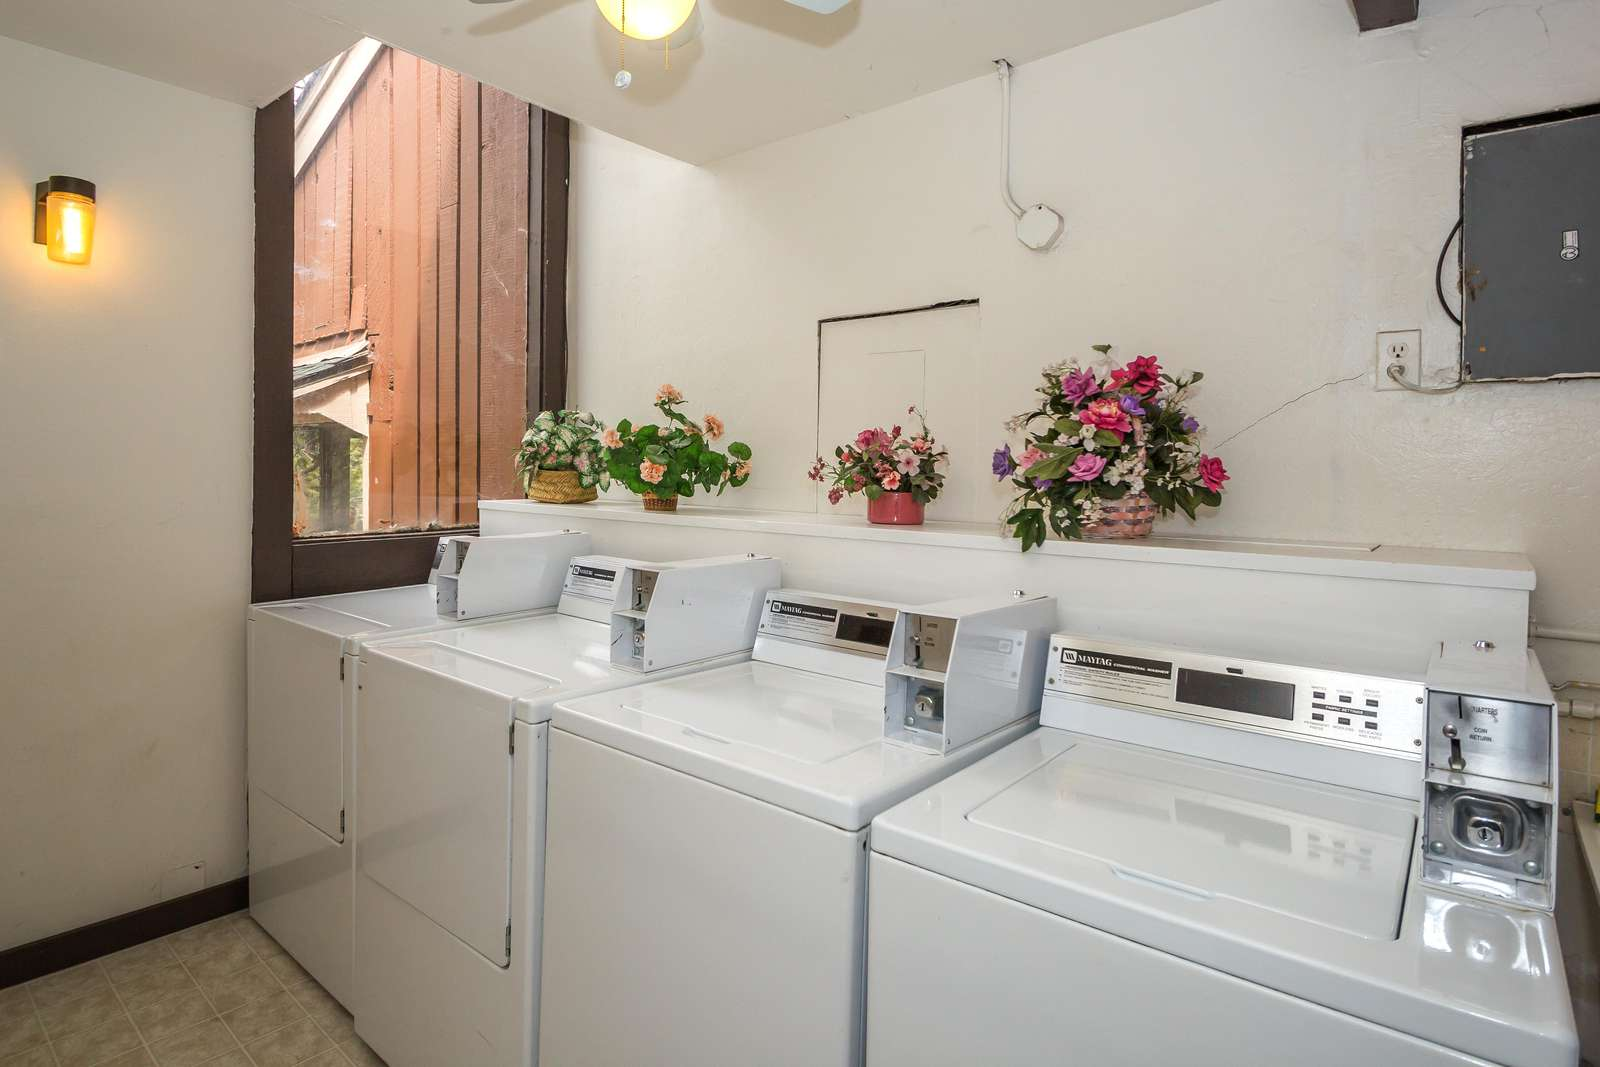 The public laundry room upstairs in the condominium building with coin operated machines.